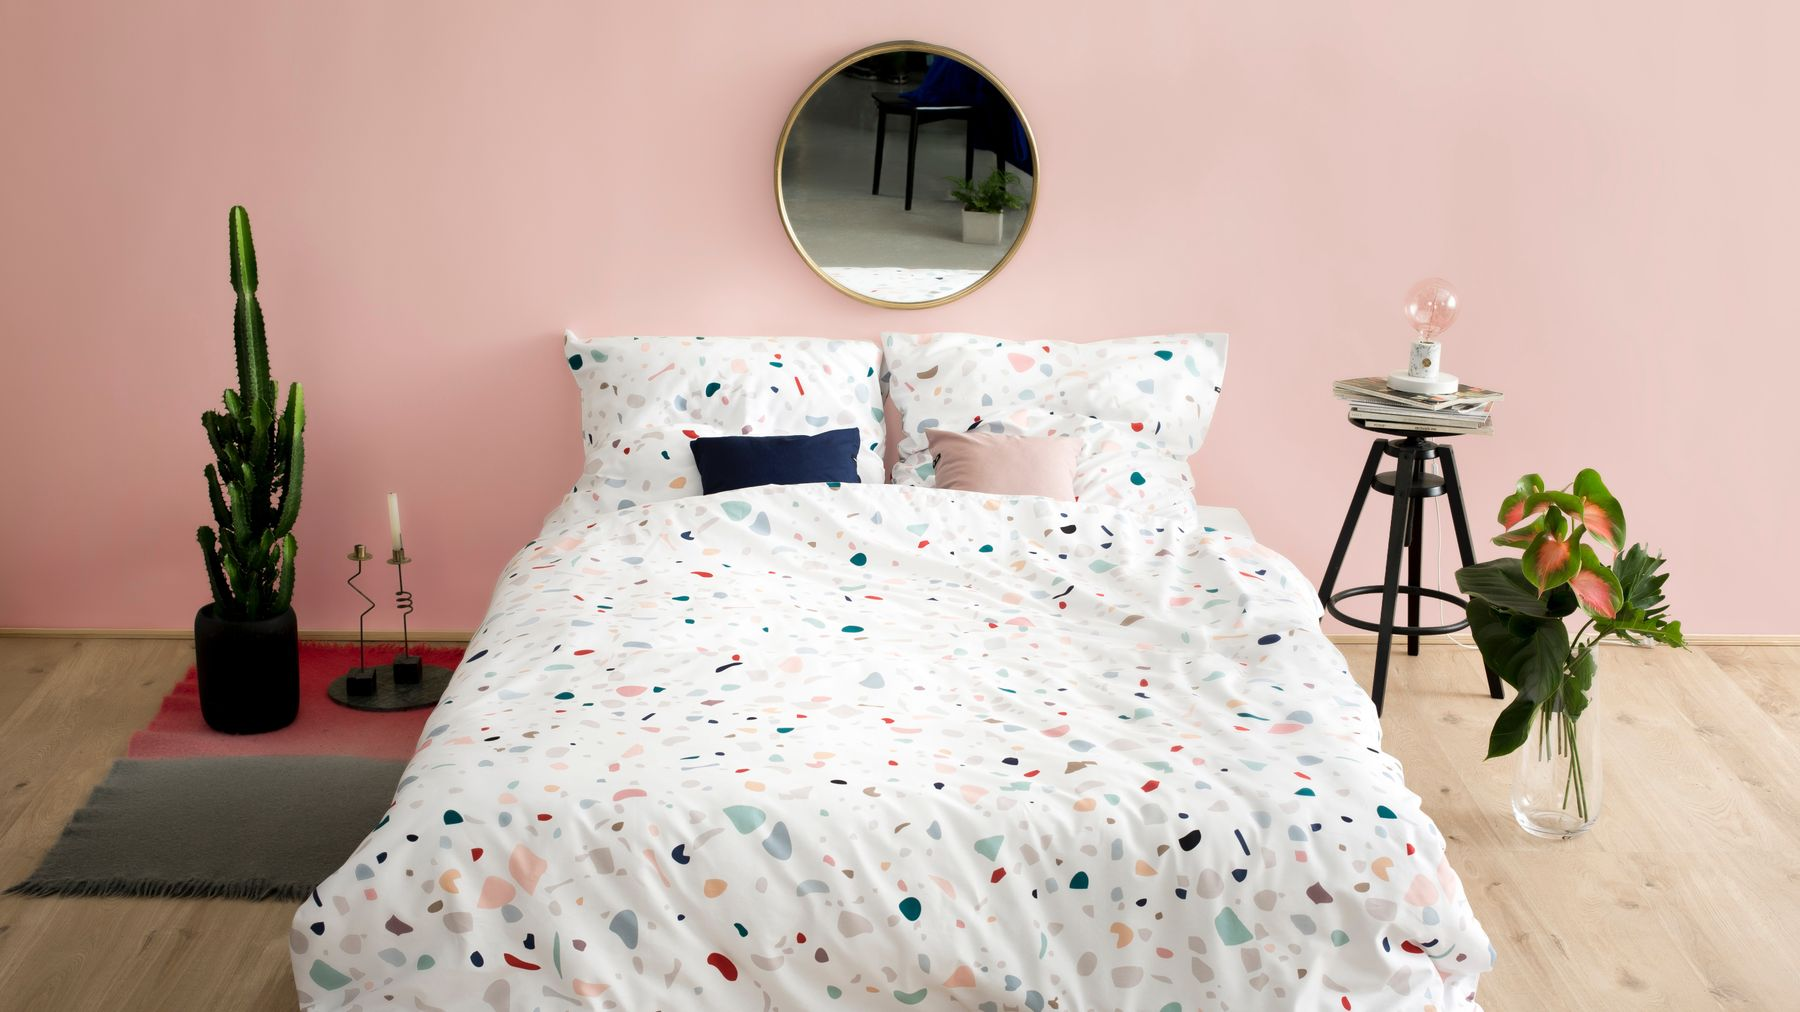 Small Bedroom Hacks If Your Room Is The Size Of A Shoe Cupboard | Grazia